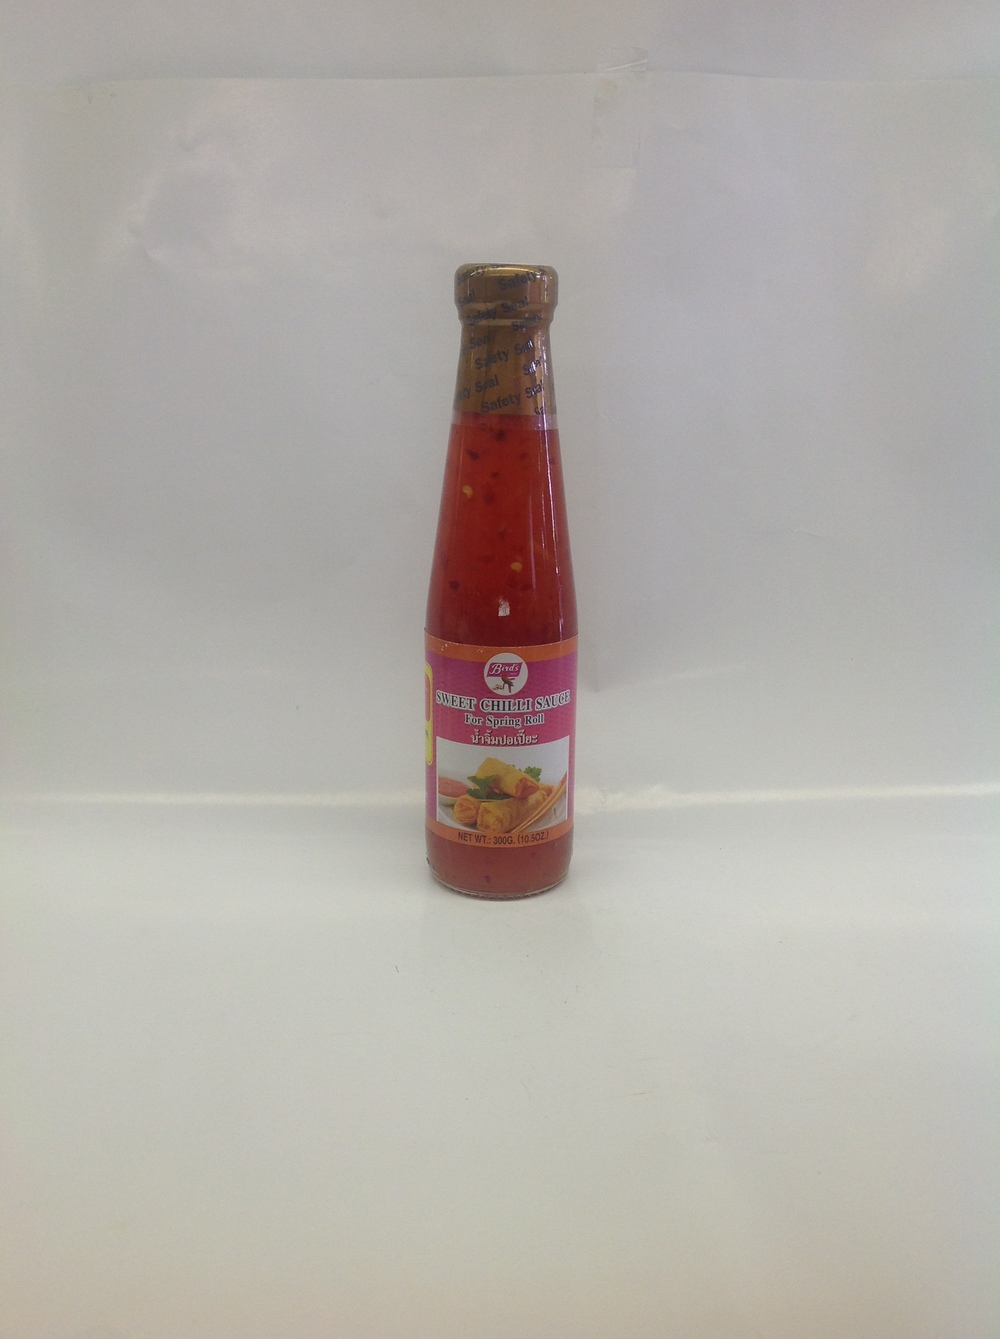 Sweet Chili Sauce for Spring Roll   Bird's   SC16215 24x10 oz